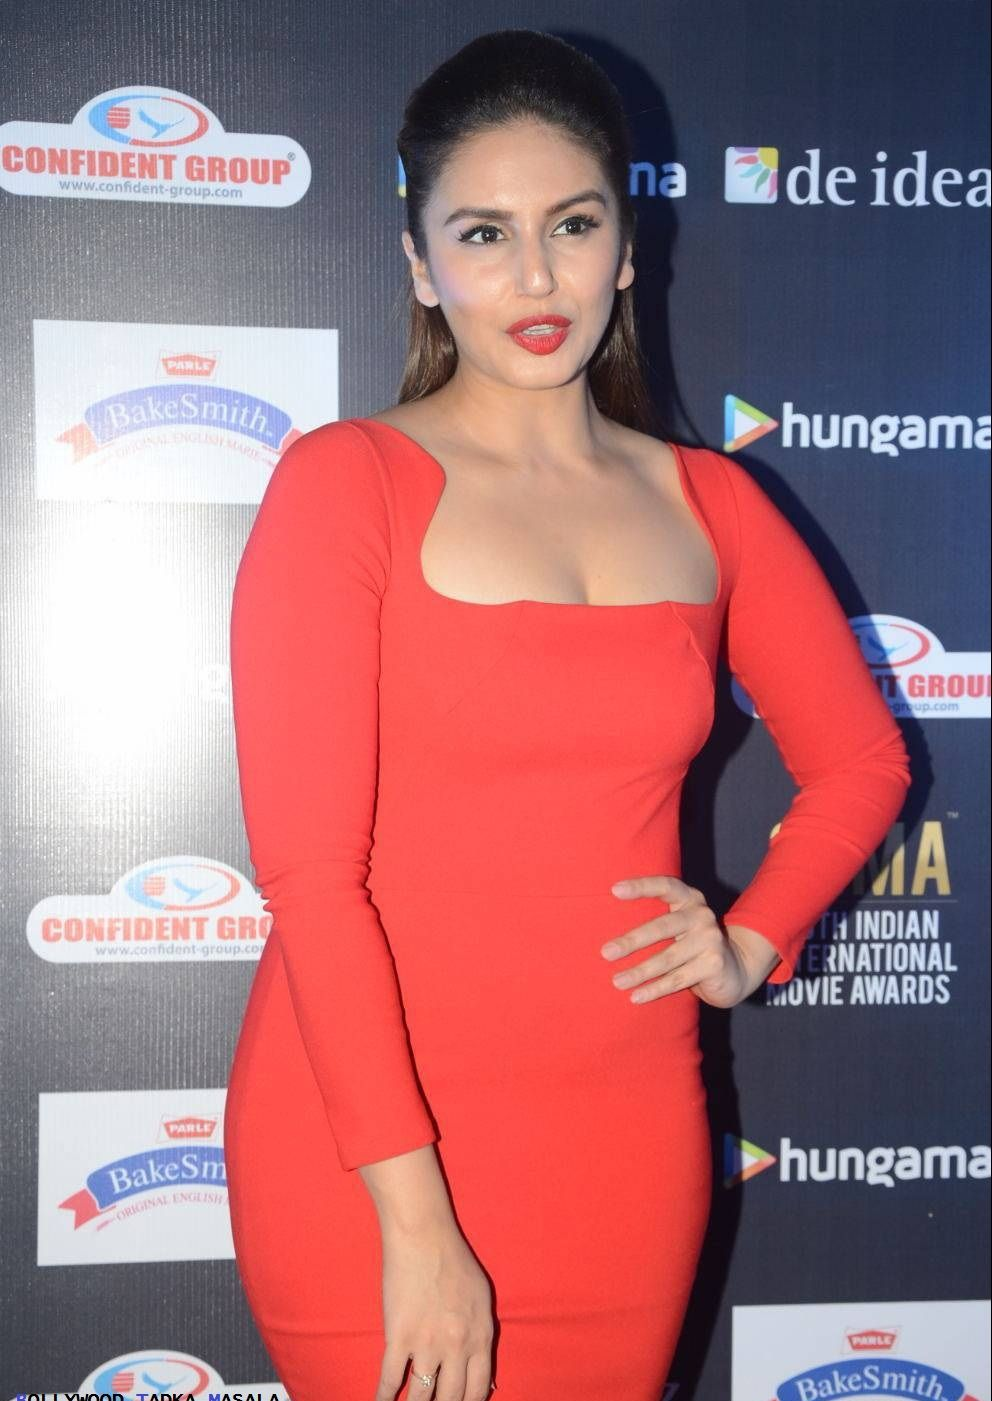 Huma Qureshi Stunning Photo Shoot For Event